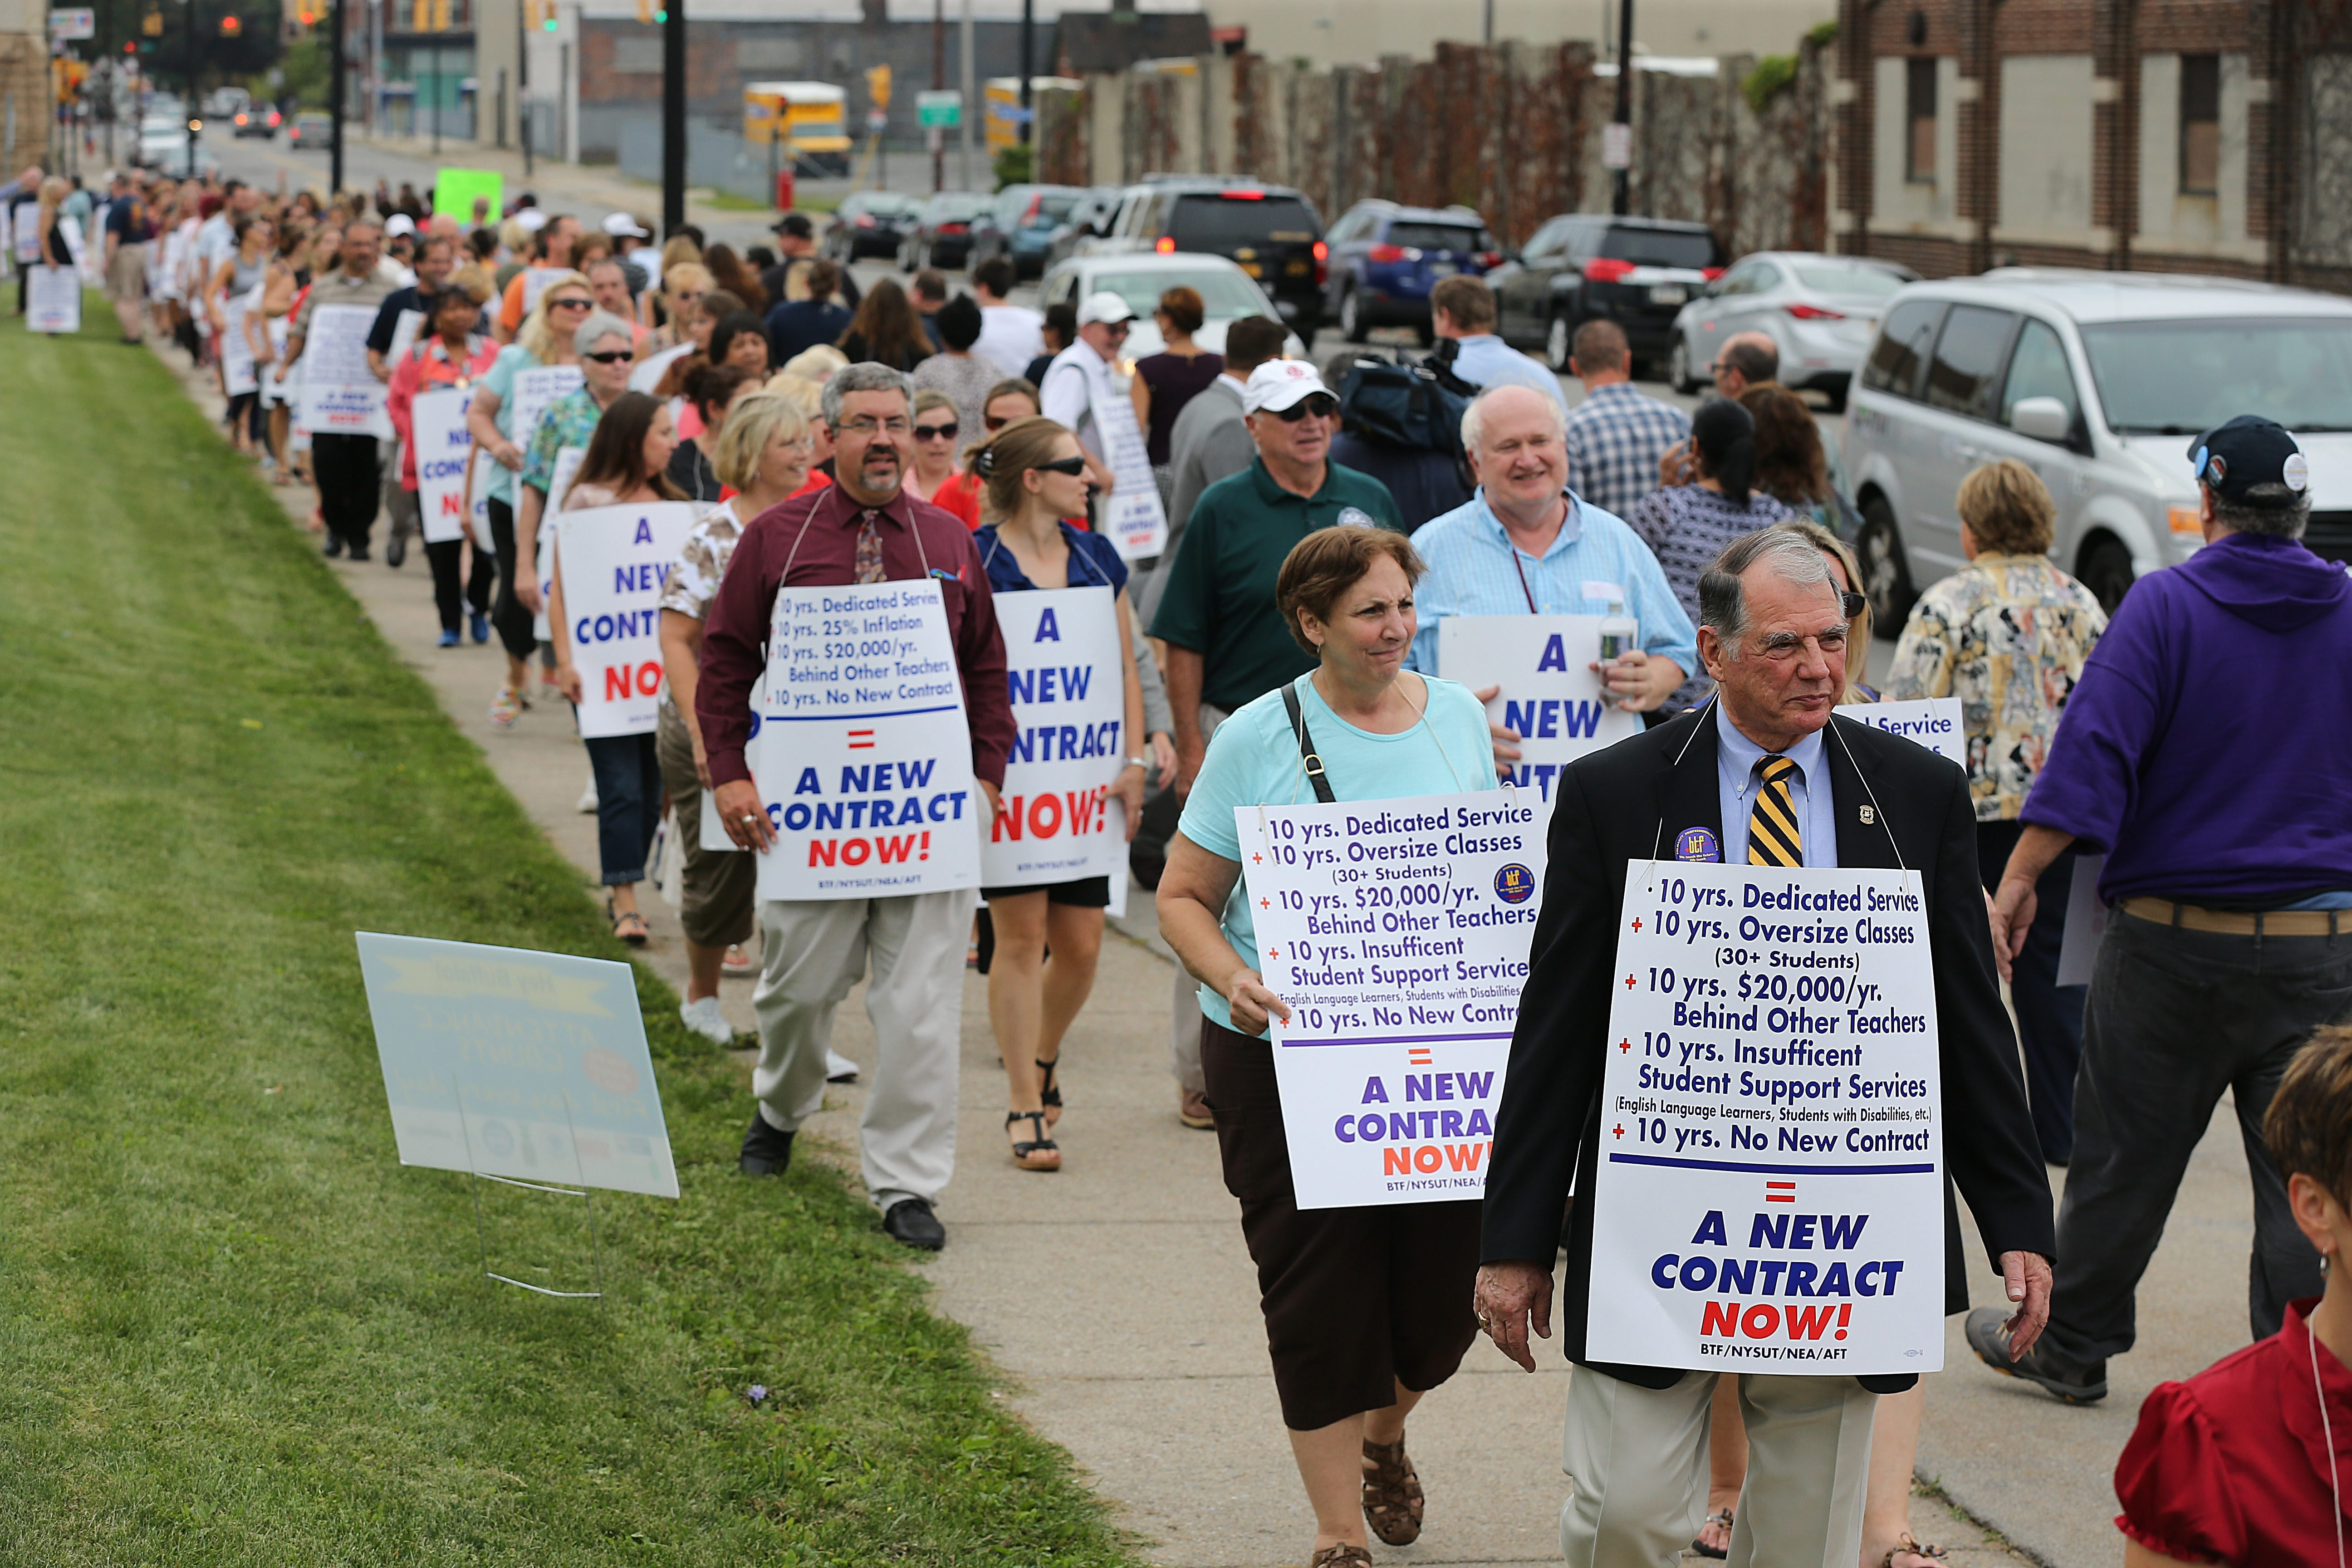 A Buffalo News file photo from September 2014 shows President Phil Rumore, right, with members of the Buffalo Teachers Federation in picketing outside a school board meeting at the Buffalo Academy for the Visual & Performing Arts. (Buffalo News file photo)